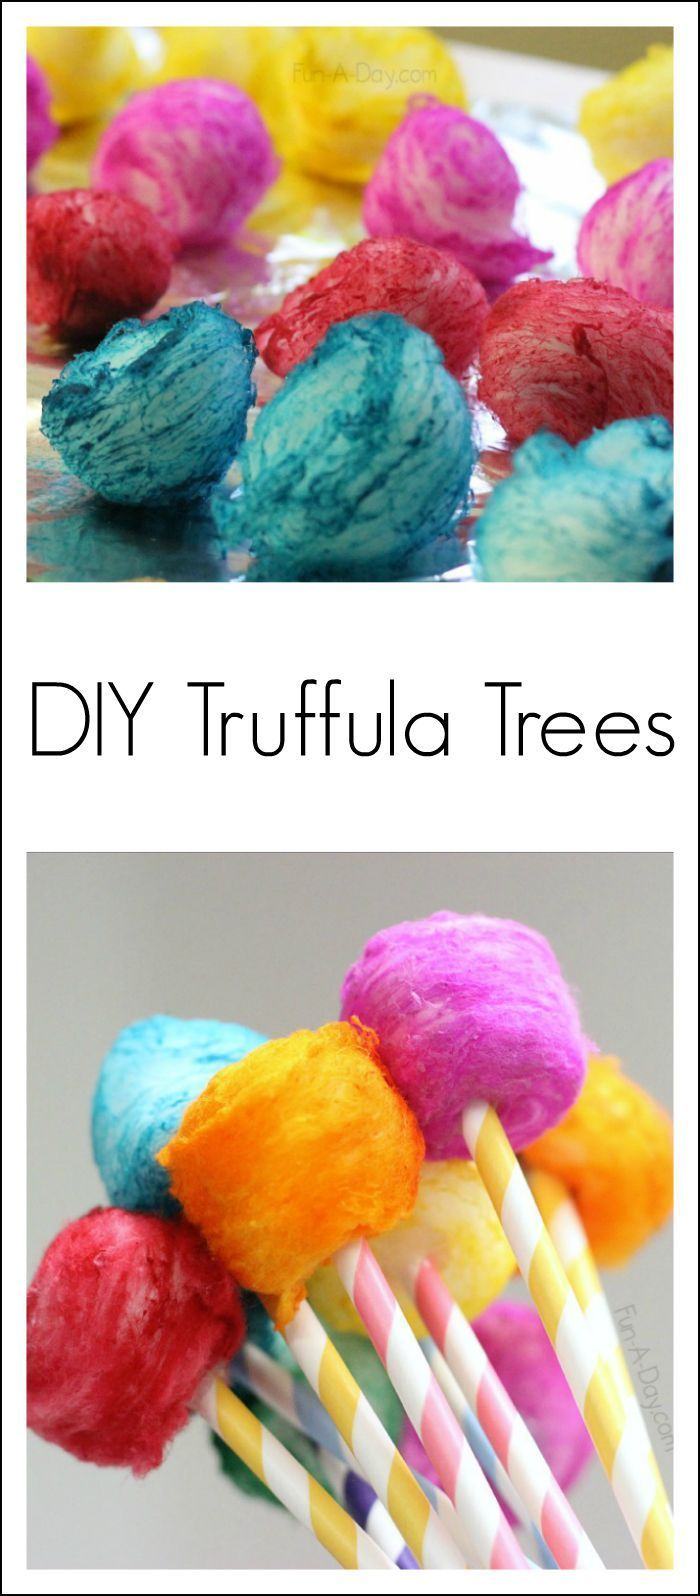 Easy dr seuss crafts - Diy Truffula Trees A Colorful Dr Seuss Craft Kids Can Make After Reading The